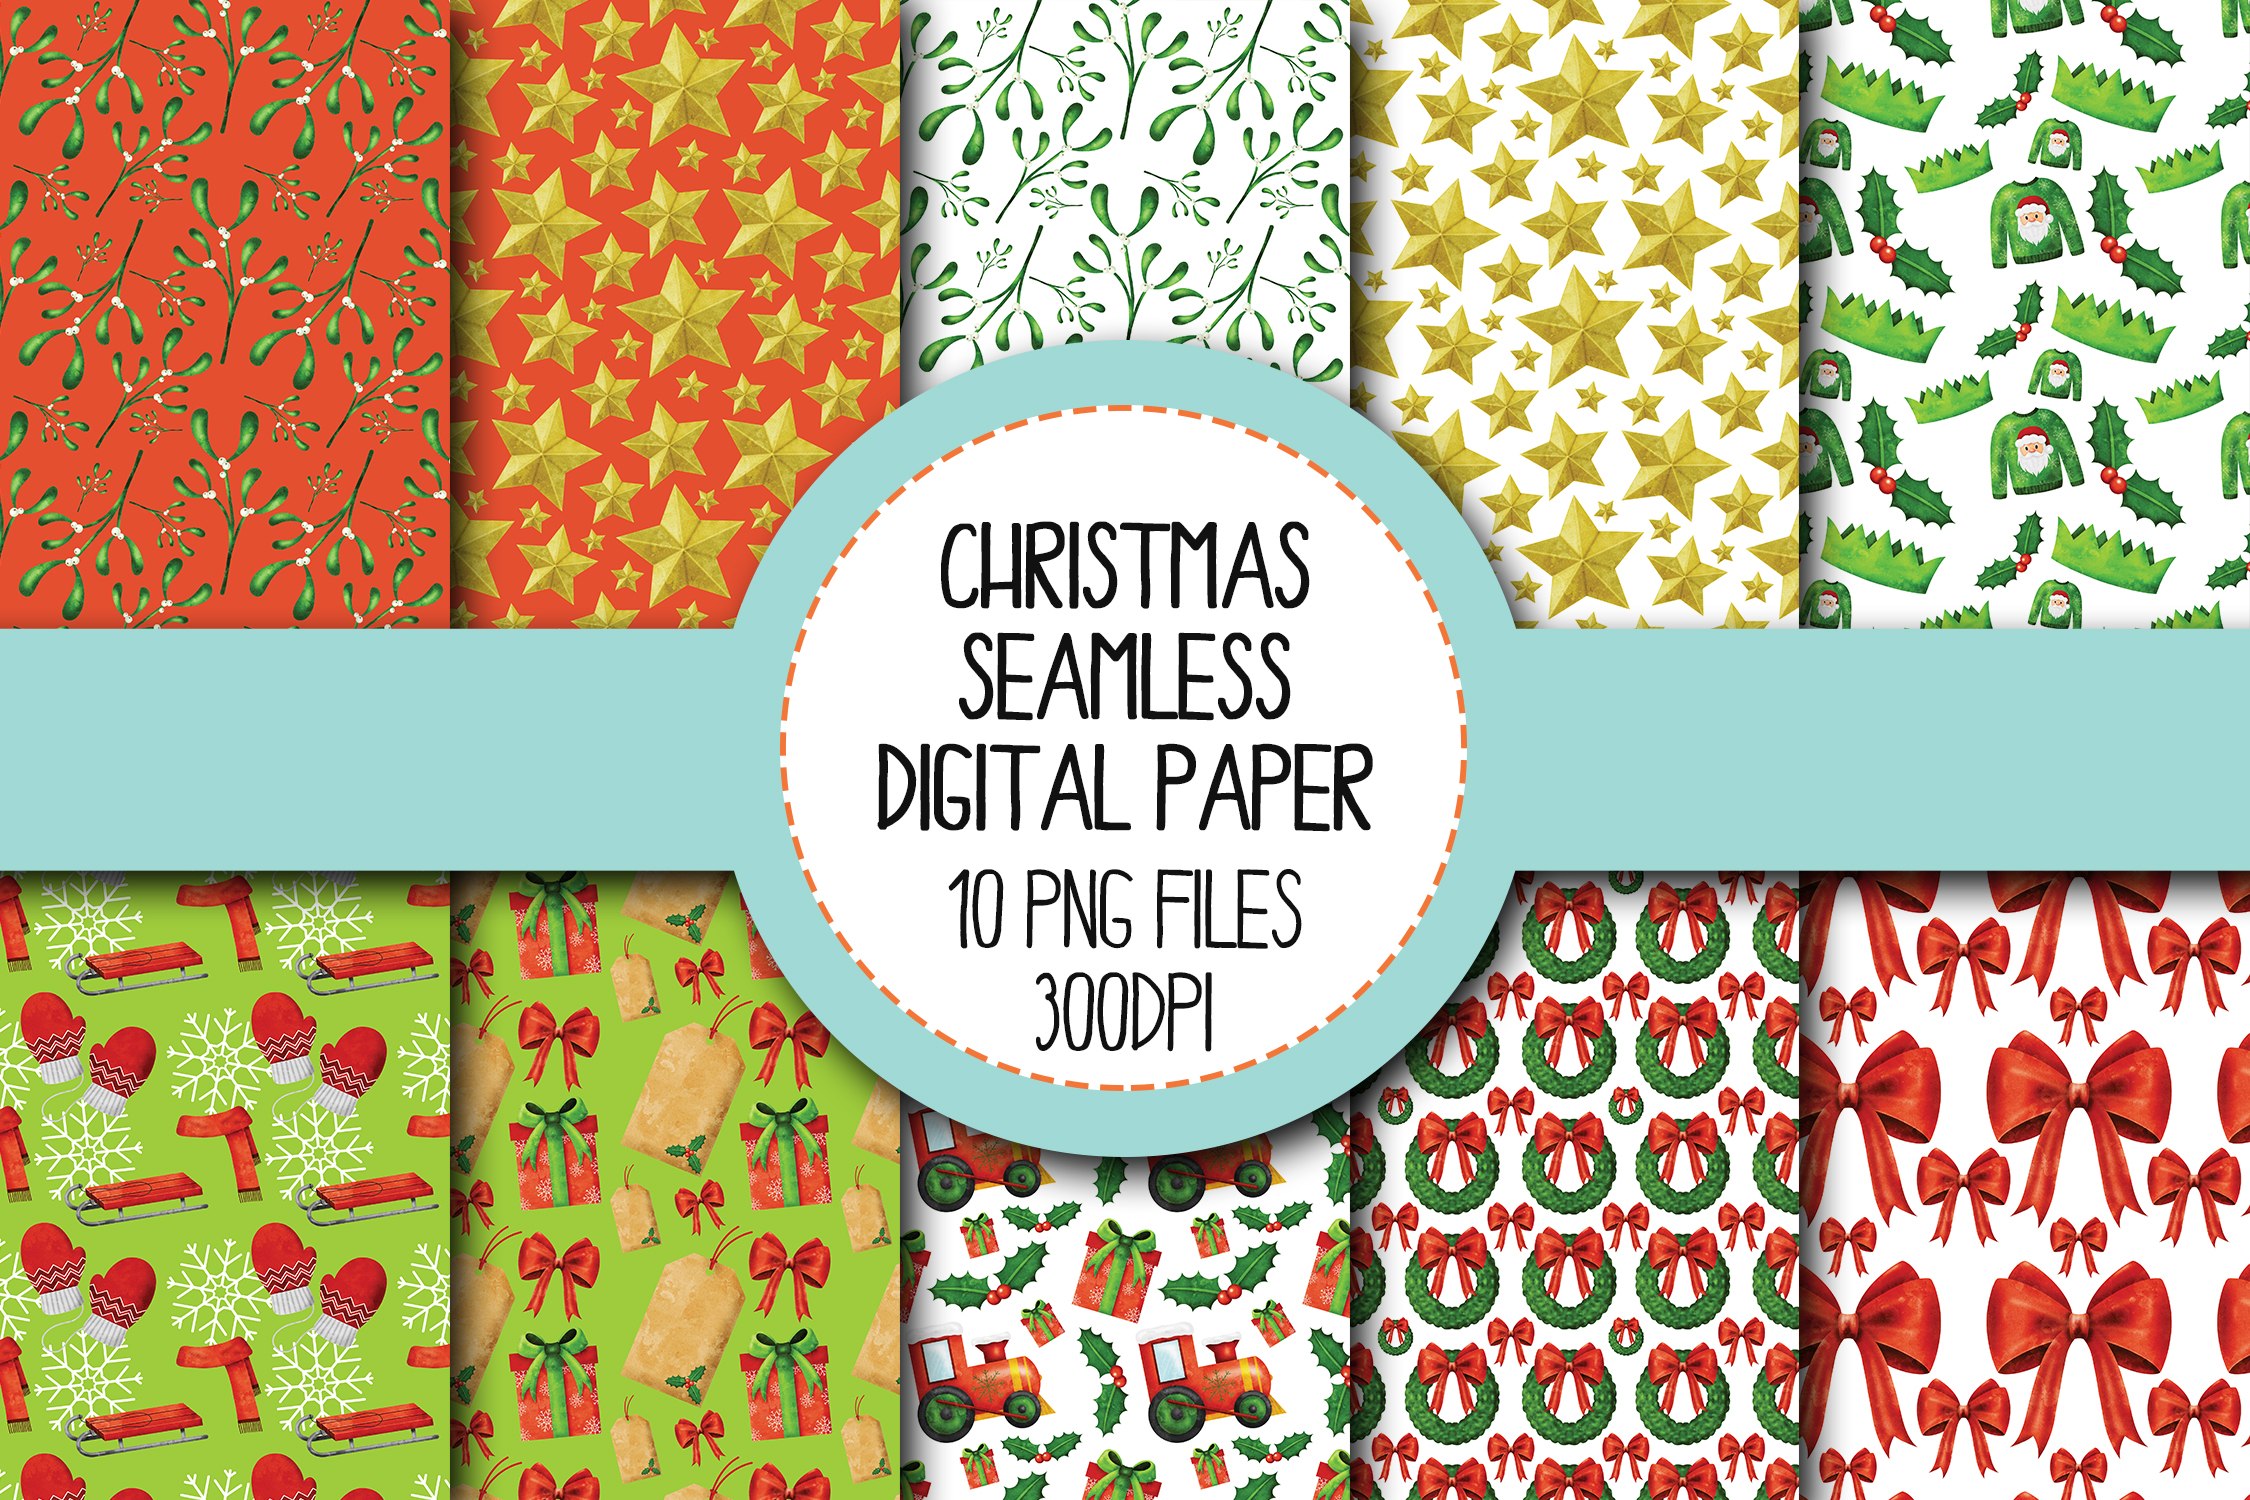 Watercolor Christmas Seamless Digital Papers Set 4 example image 1